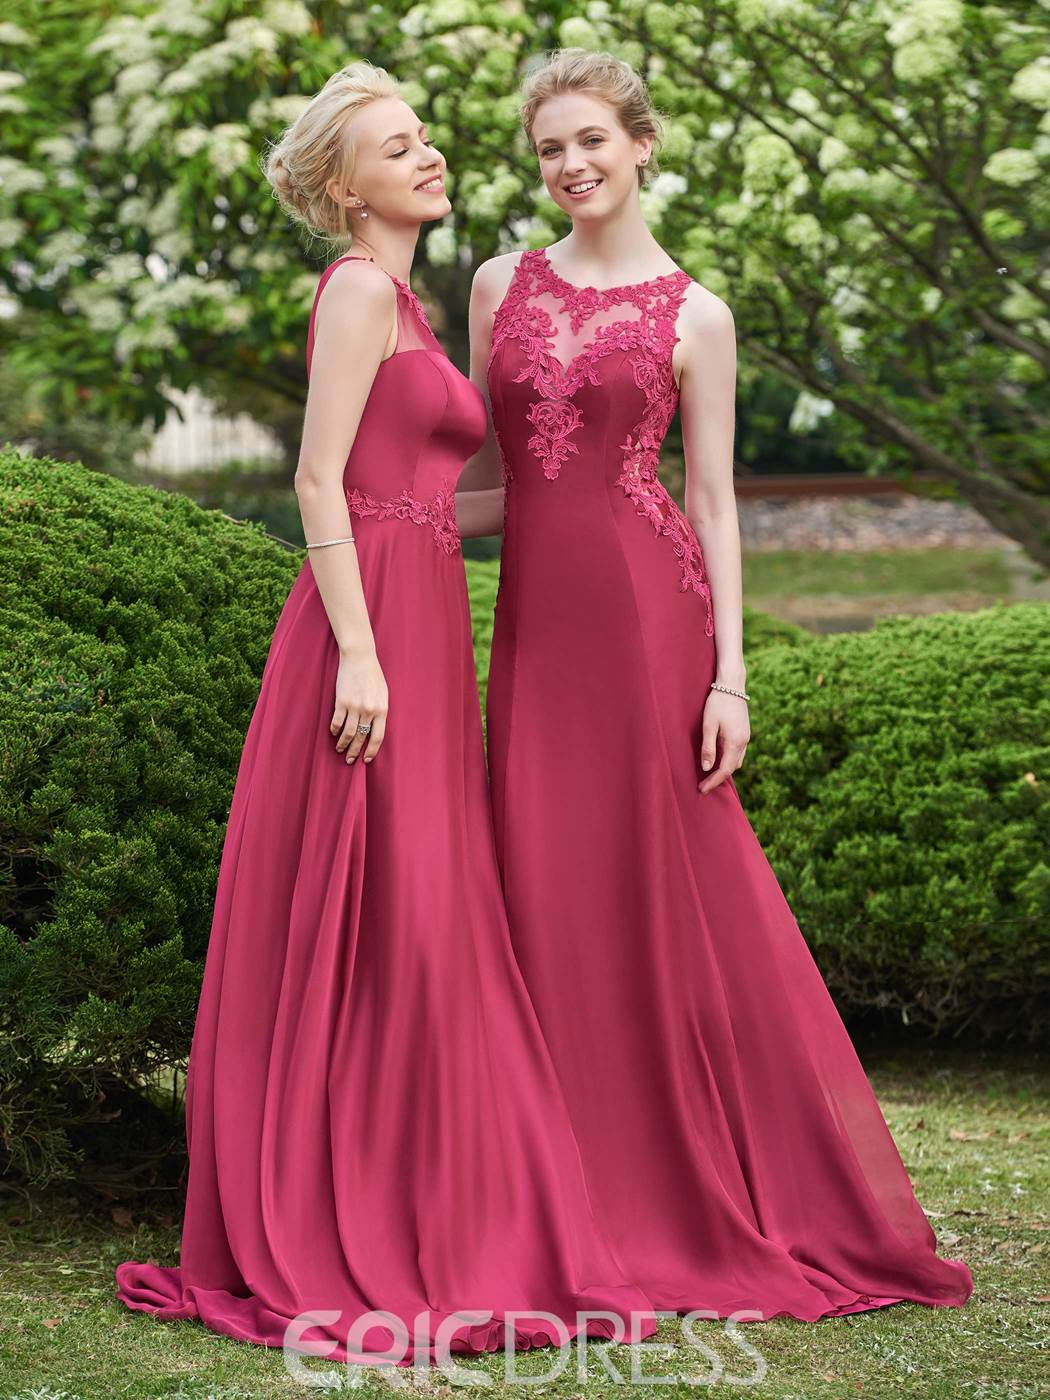 Ericdress Beautiful Illusion Neckline Long Bridesmaid Dress